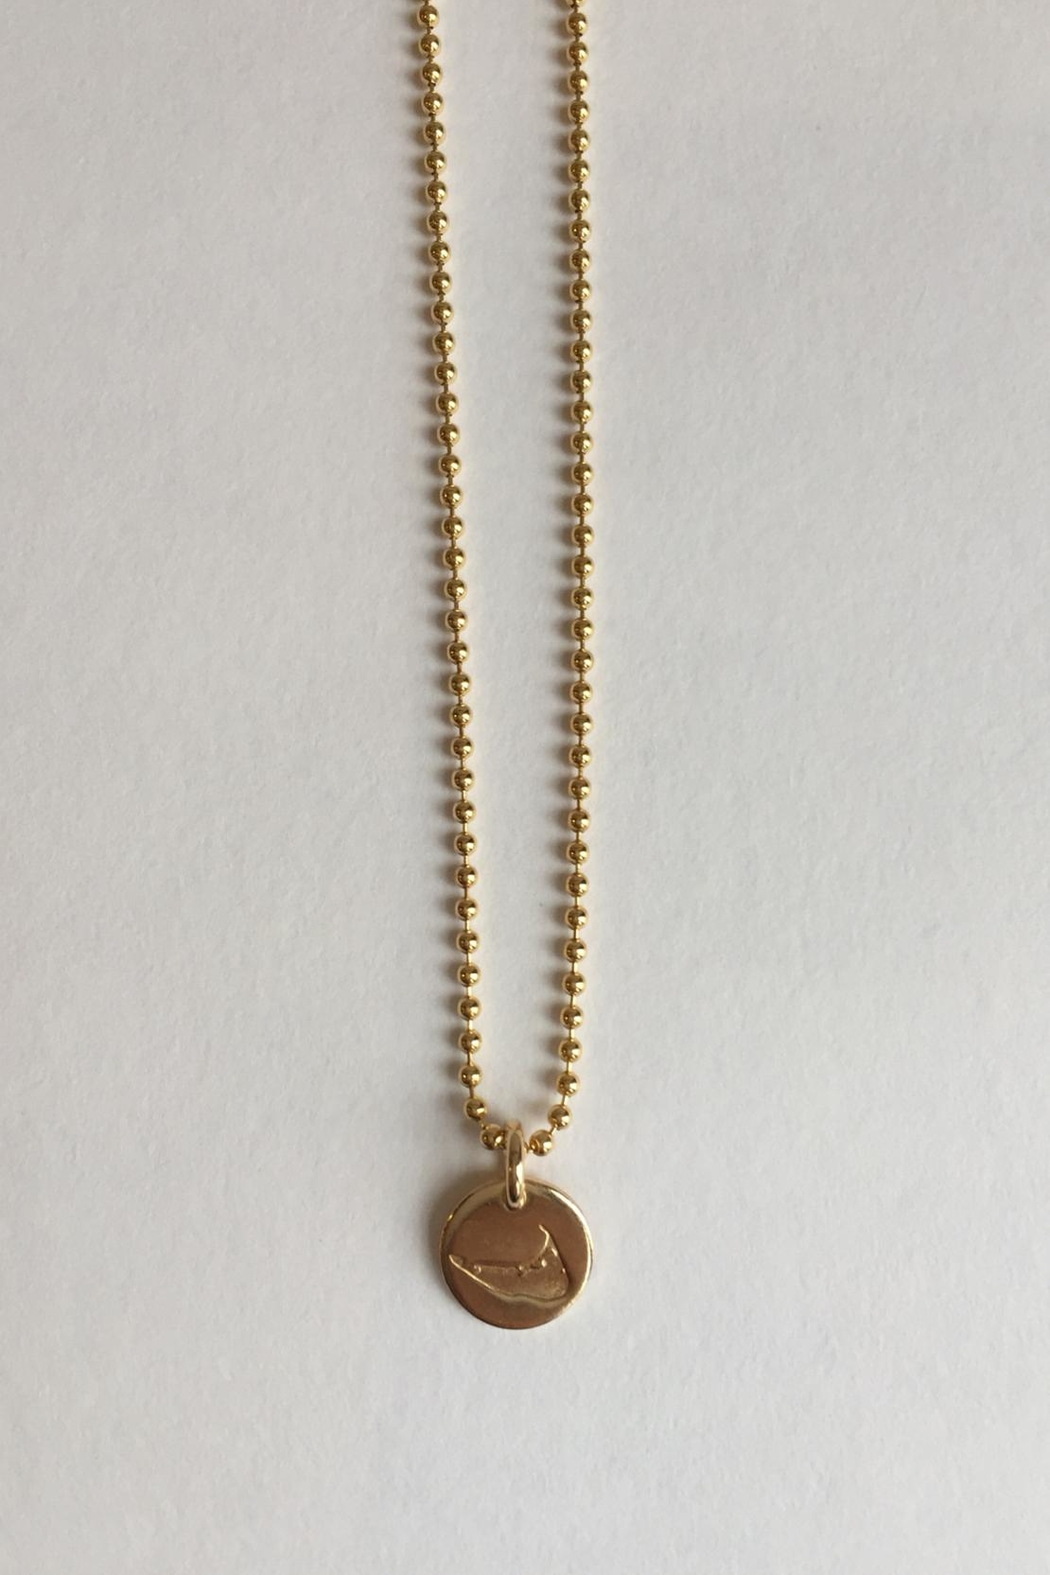 CARRIE'D AWAY Nantucket Island Necklace - Main Image